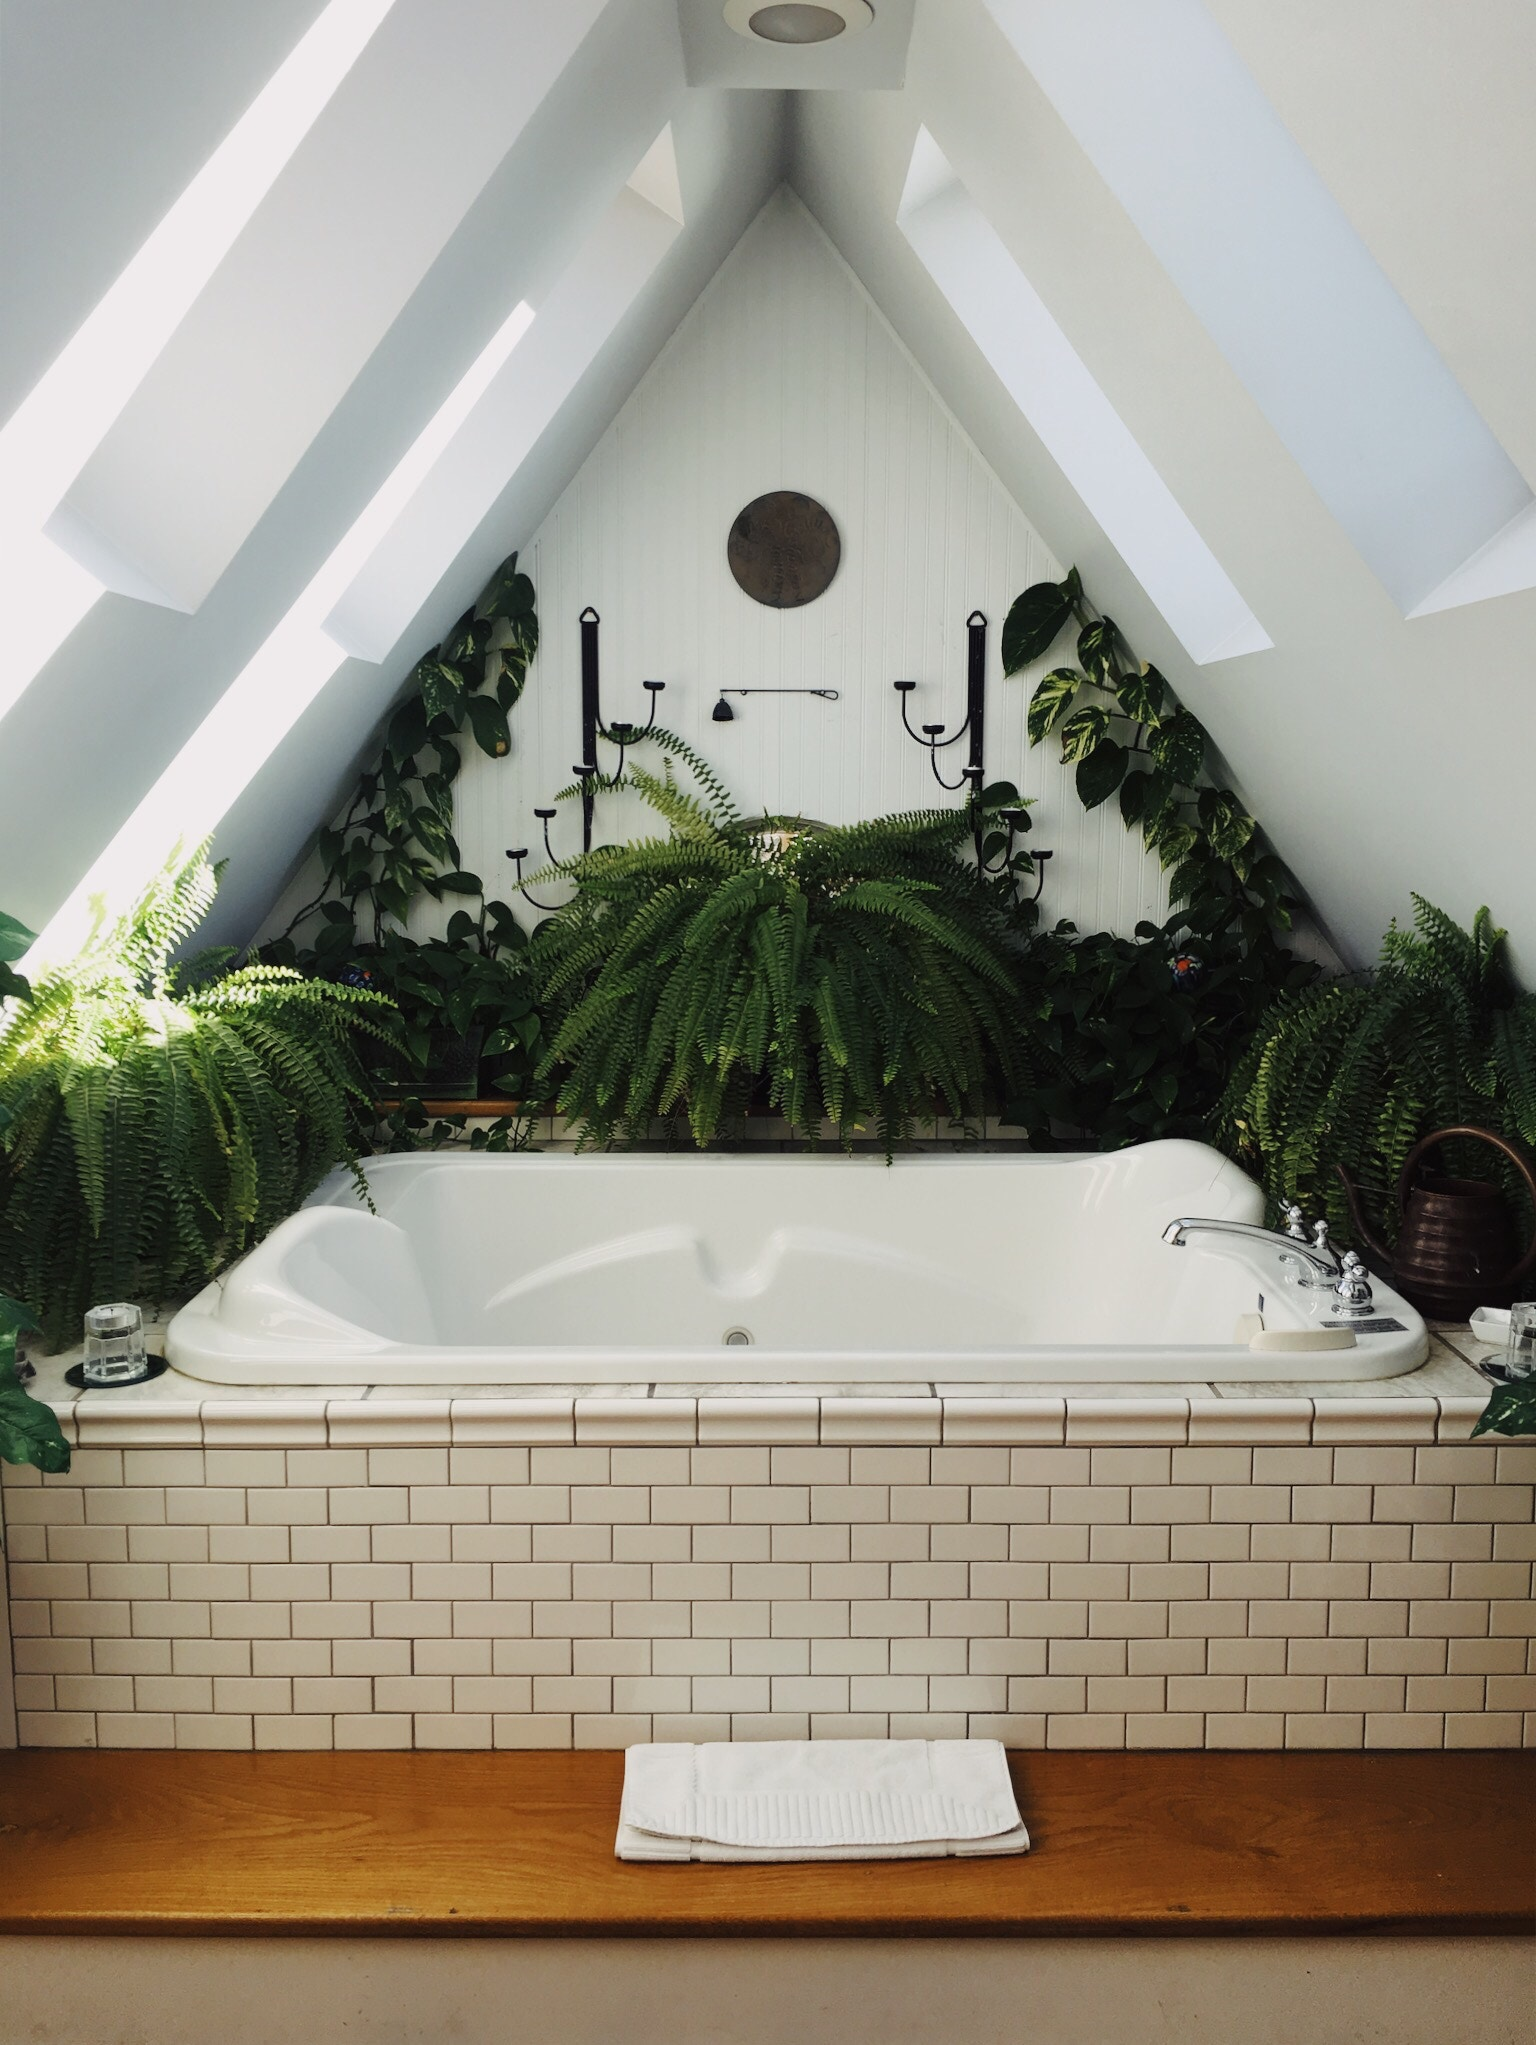 Find Out Now, What Should You Do For Your Bathroom Decor bathroom decor Find Out Now, What Should You Do For Your Bathroom Decor Find Out Now What Should You Do For Your Bathroom Decor